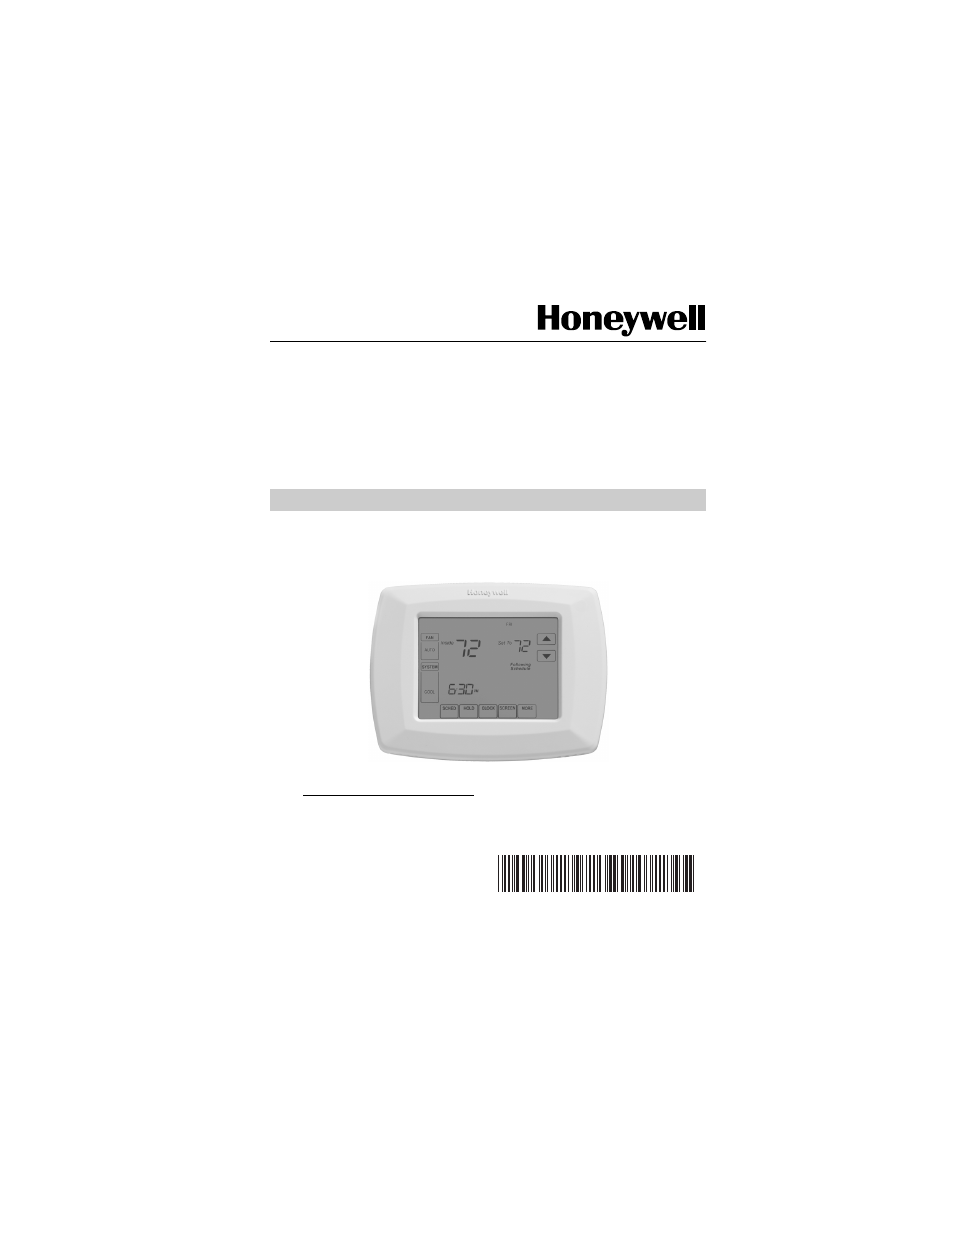 Honeywell Rth8500d Wiring Manual Pdf Wire Diagrams Rth6450 Diagram Owners Free Download 64 Pages Rth8500